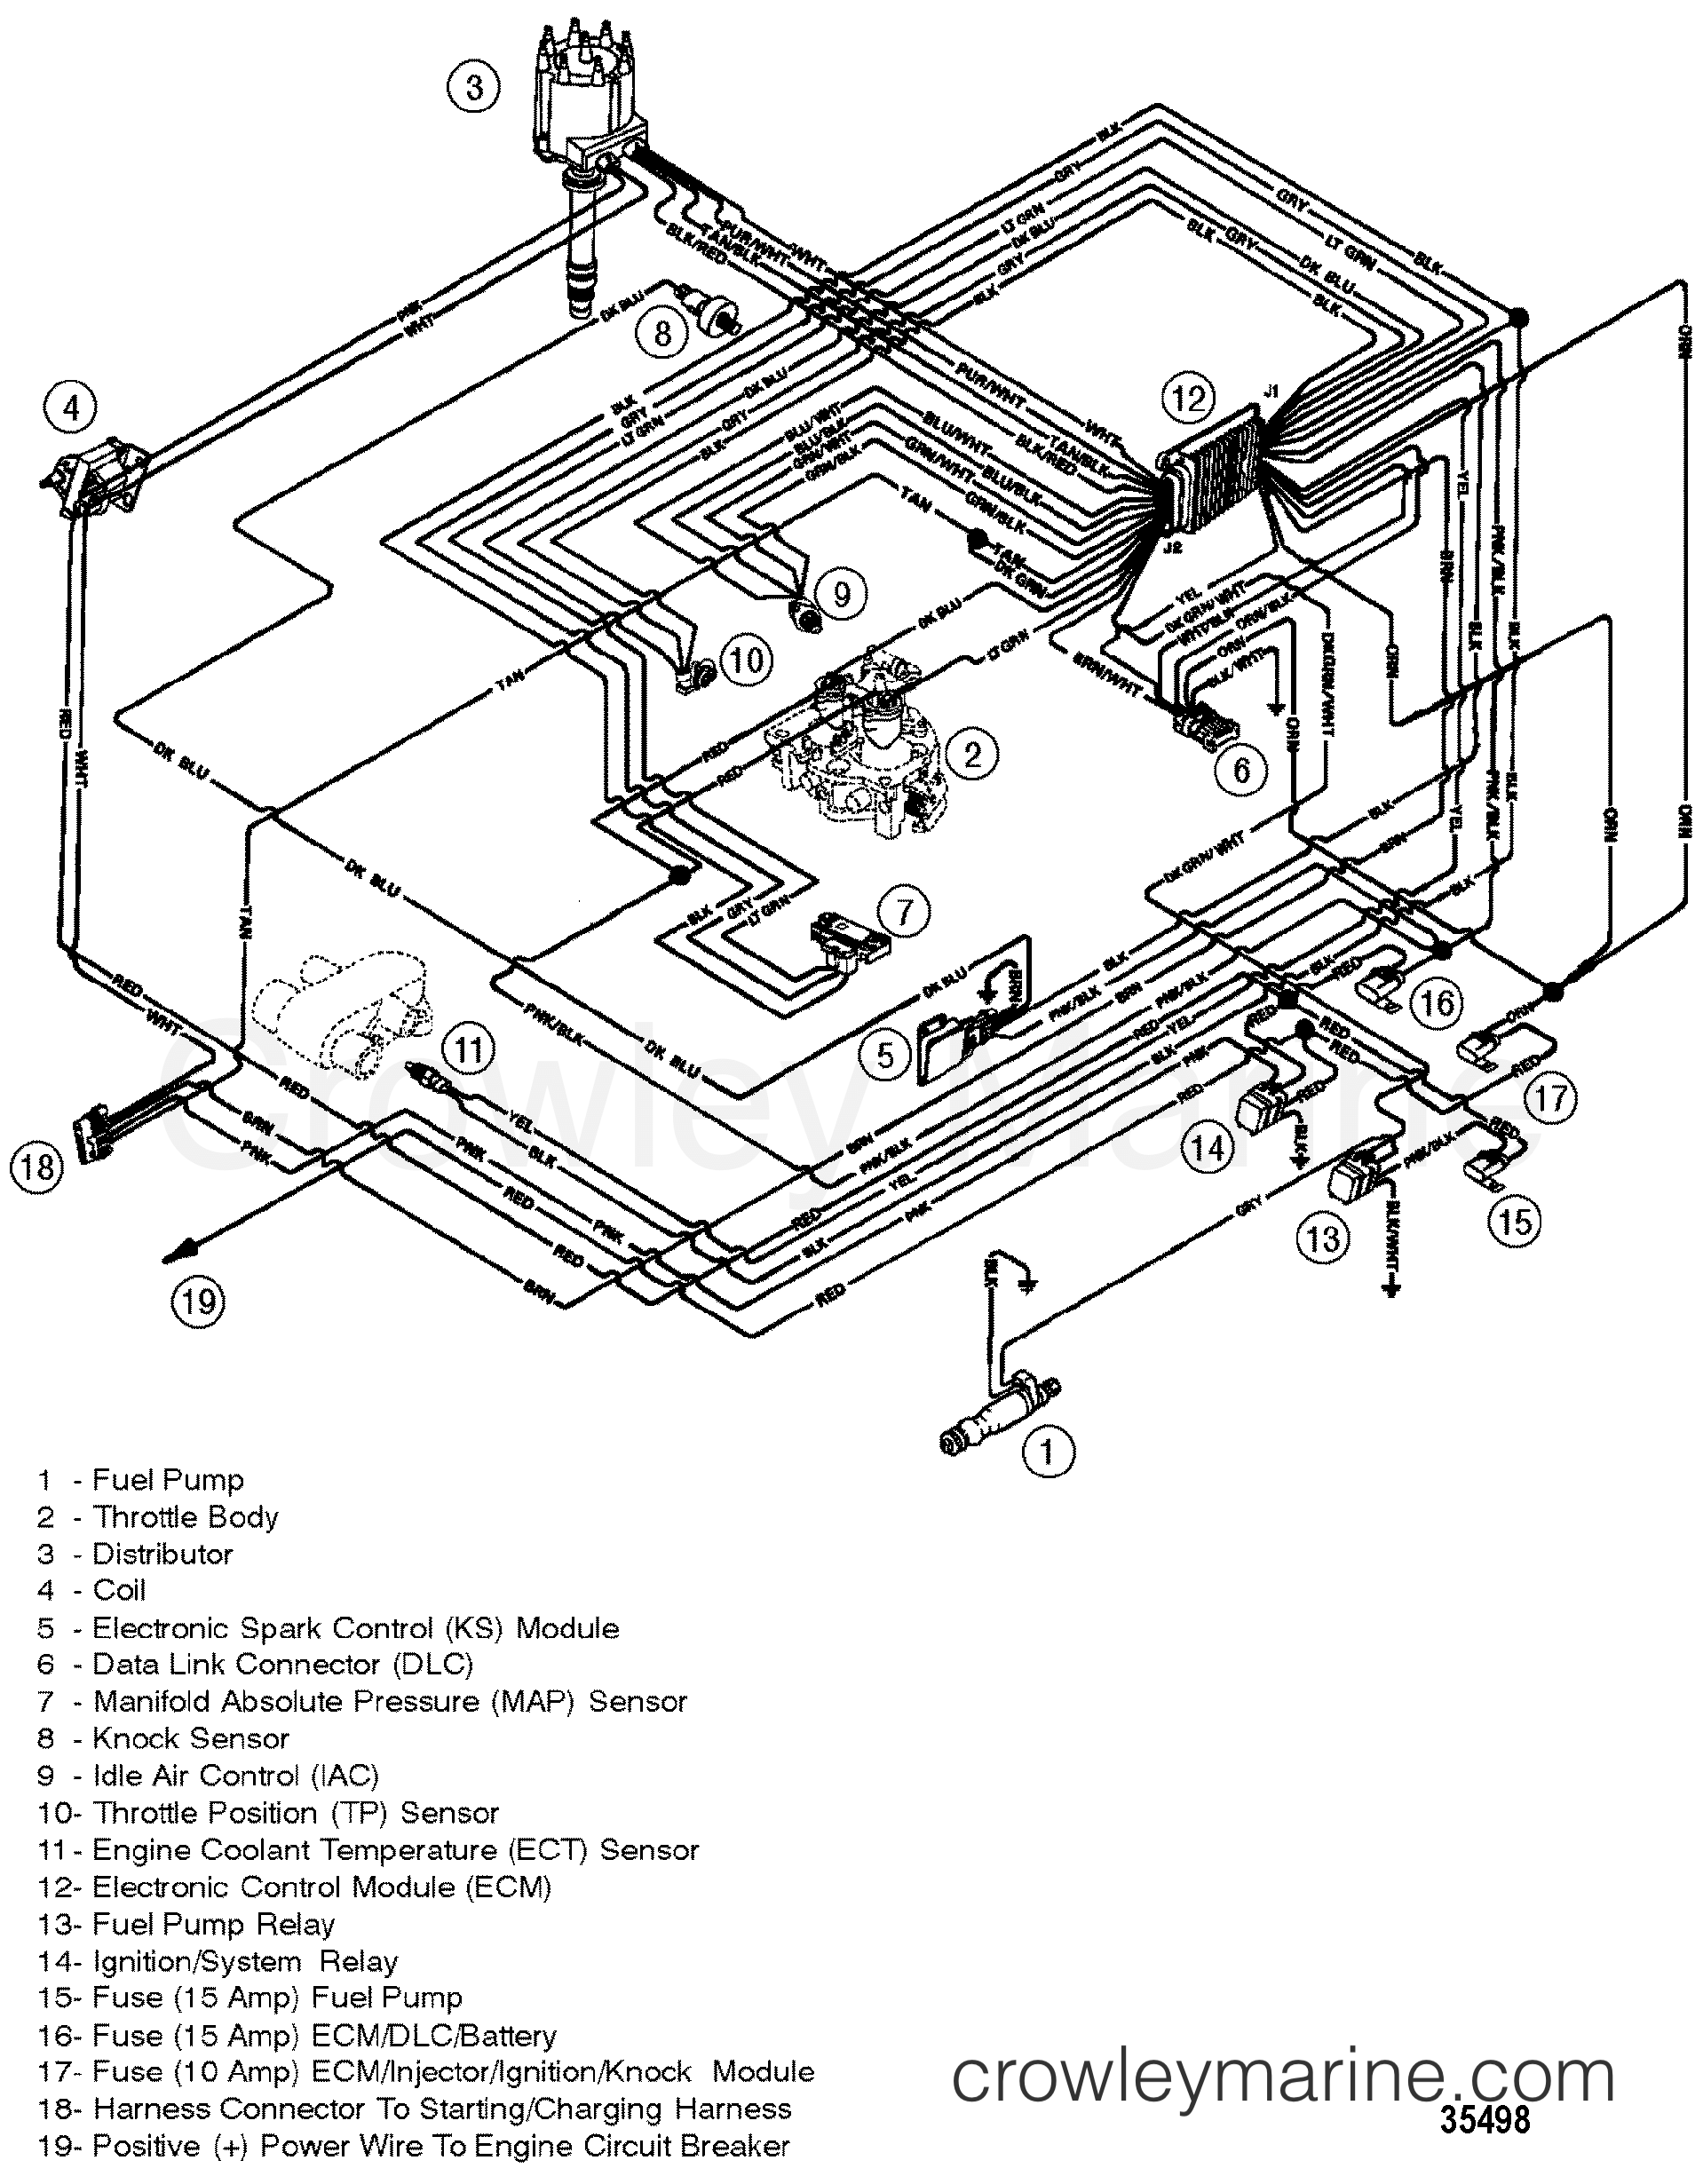 mercruiser engine wiring diagram wire center u2022 rh masinisa co 4.3 Mercruiser Parts Diagram 1986 Mercruiser 4 3 Engine Wiring